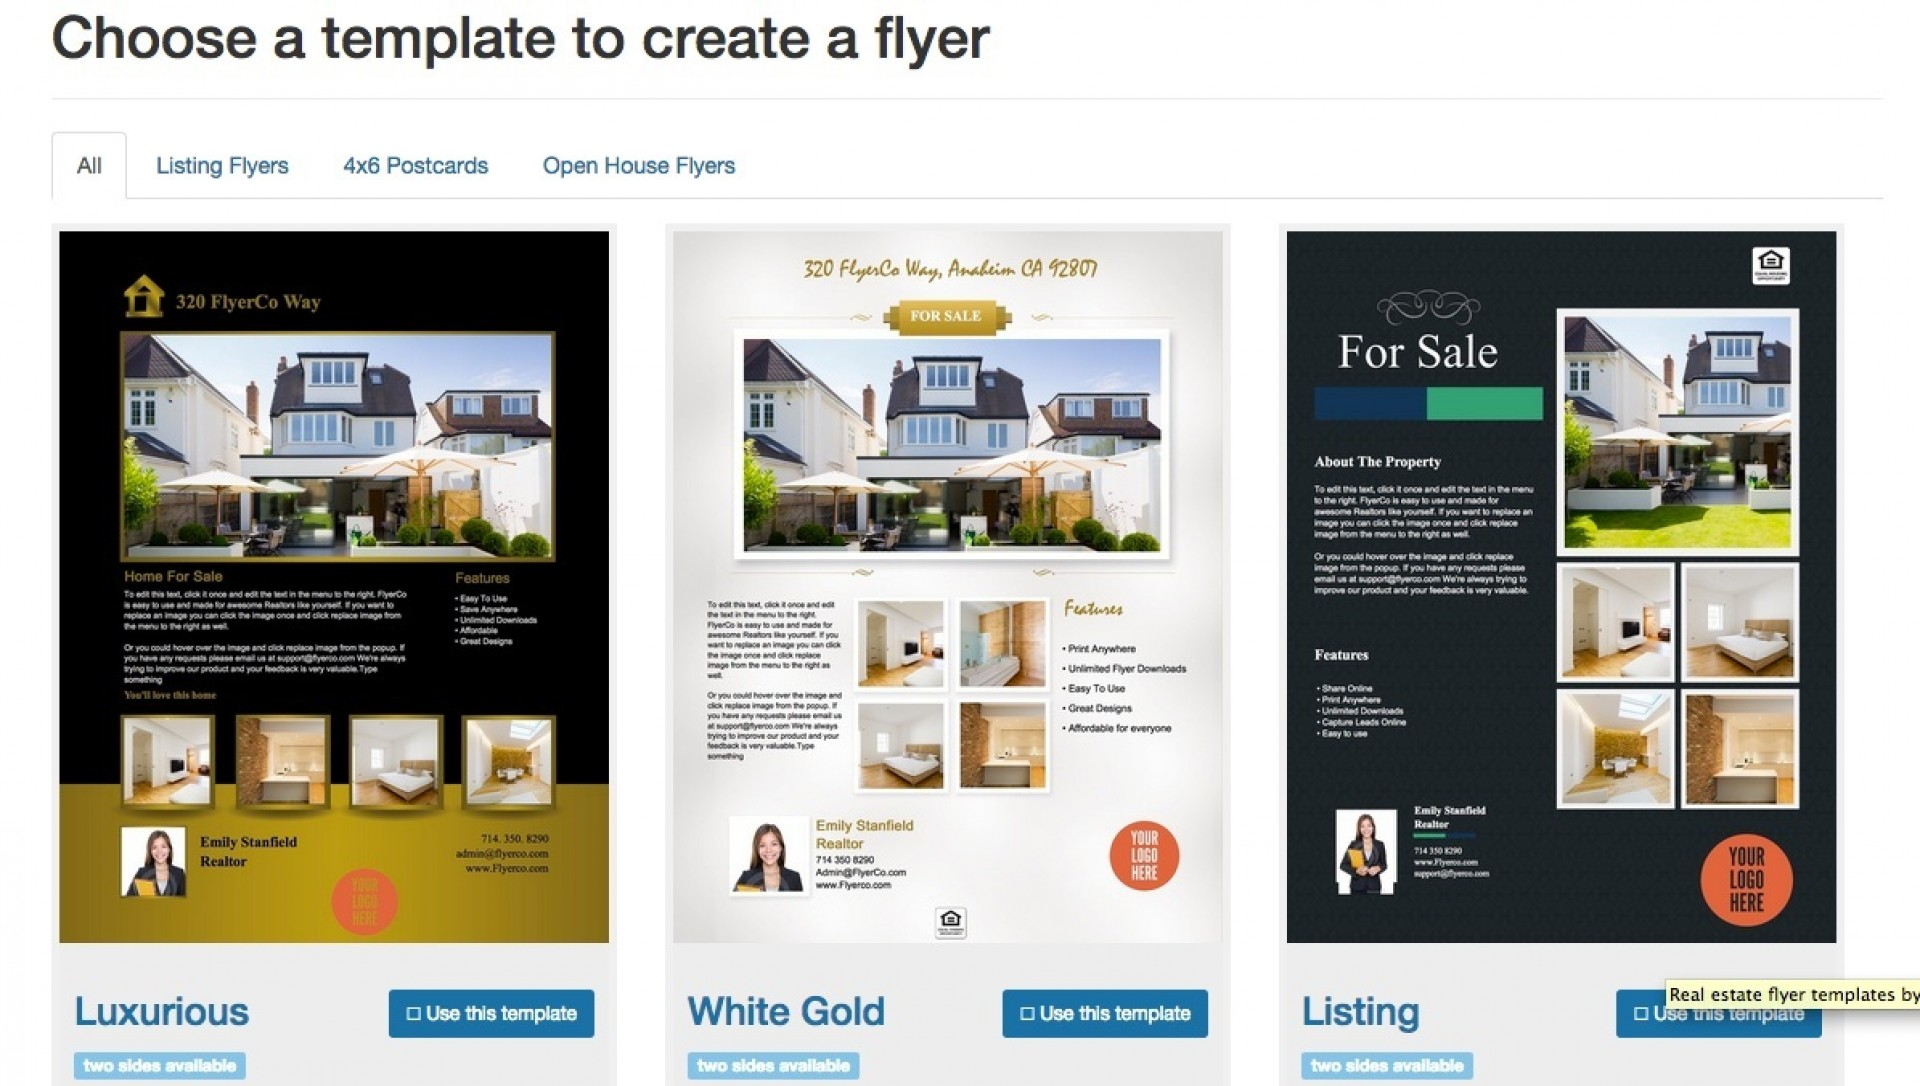 006 Remarkable Real Estate Marketing Flyer Template Free Example 1920